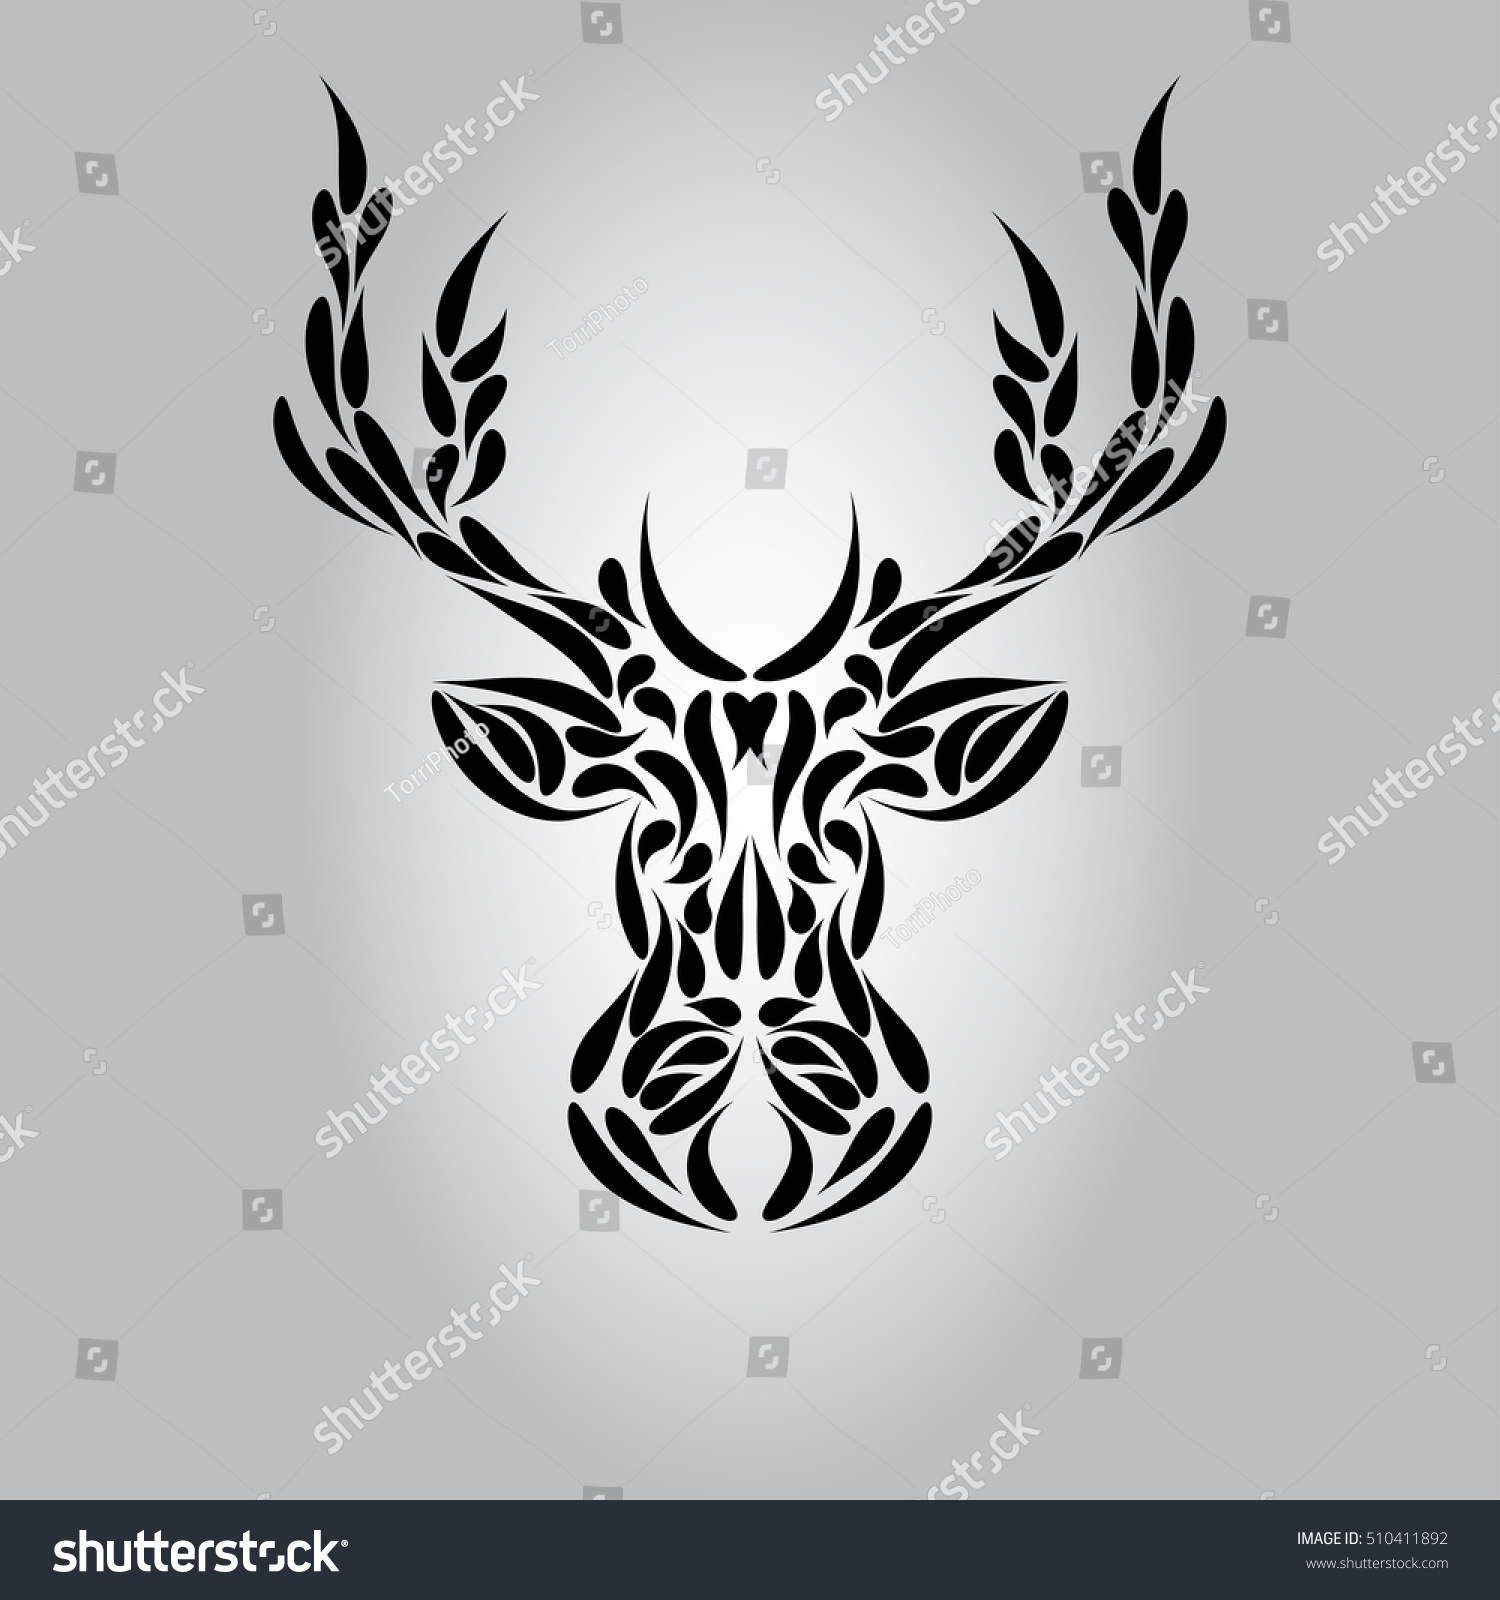 https://www.shutterstock.com/pic-510411892/stock-vector-abstract-symmetric-deer-head-ornament-tribal-tattoo-vector-illustration-eps-10.html?